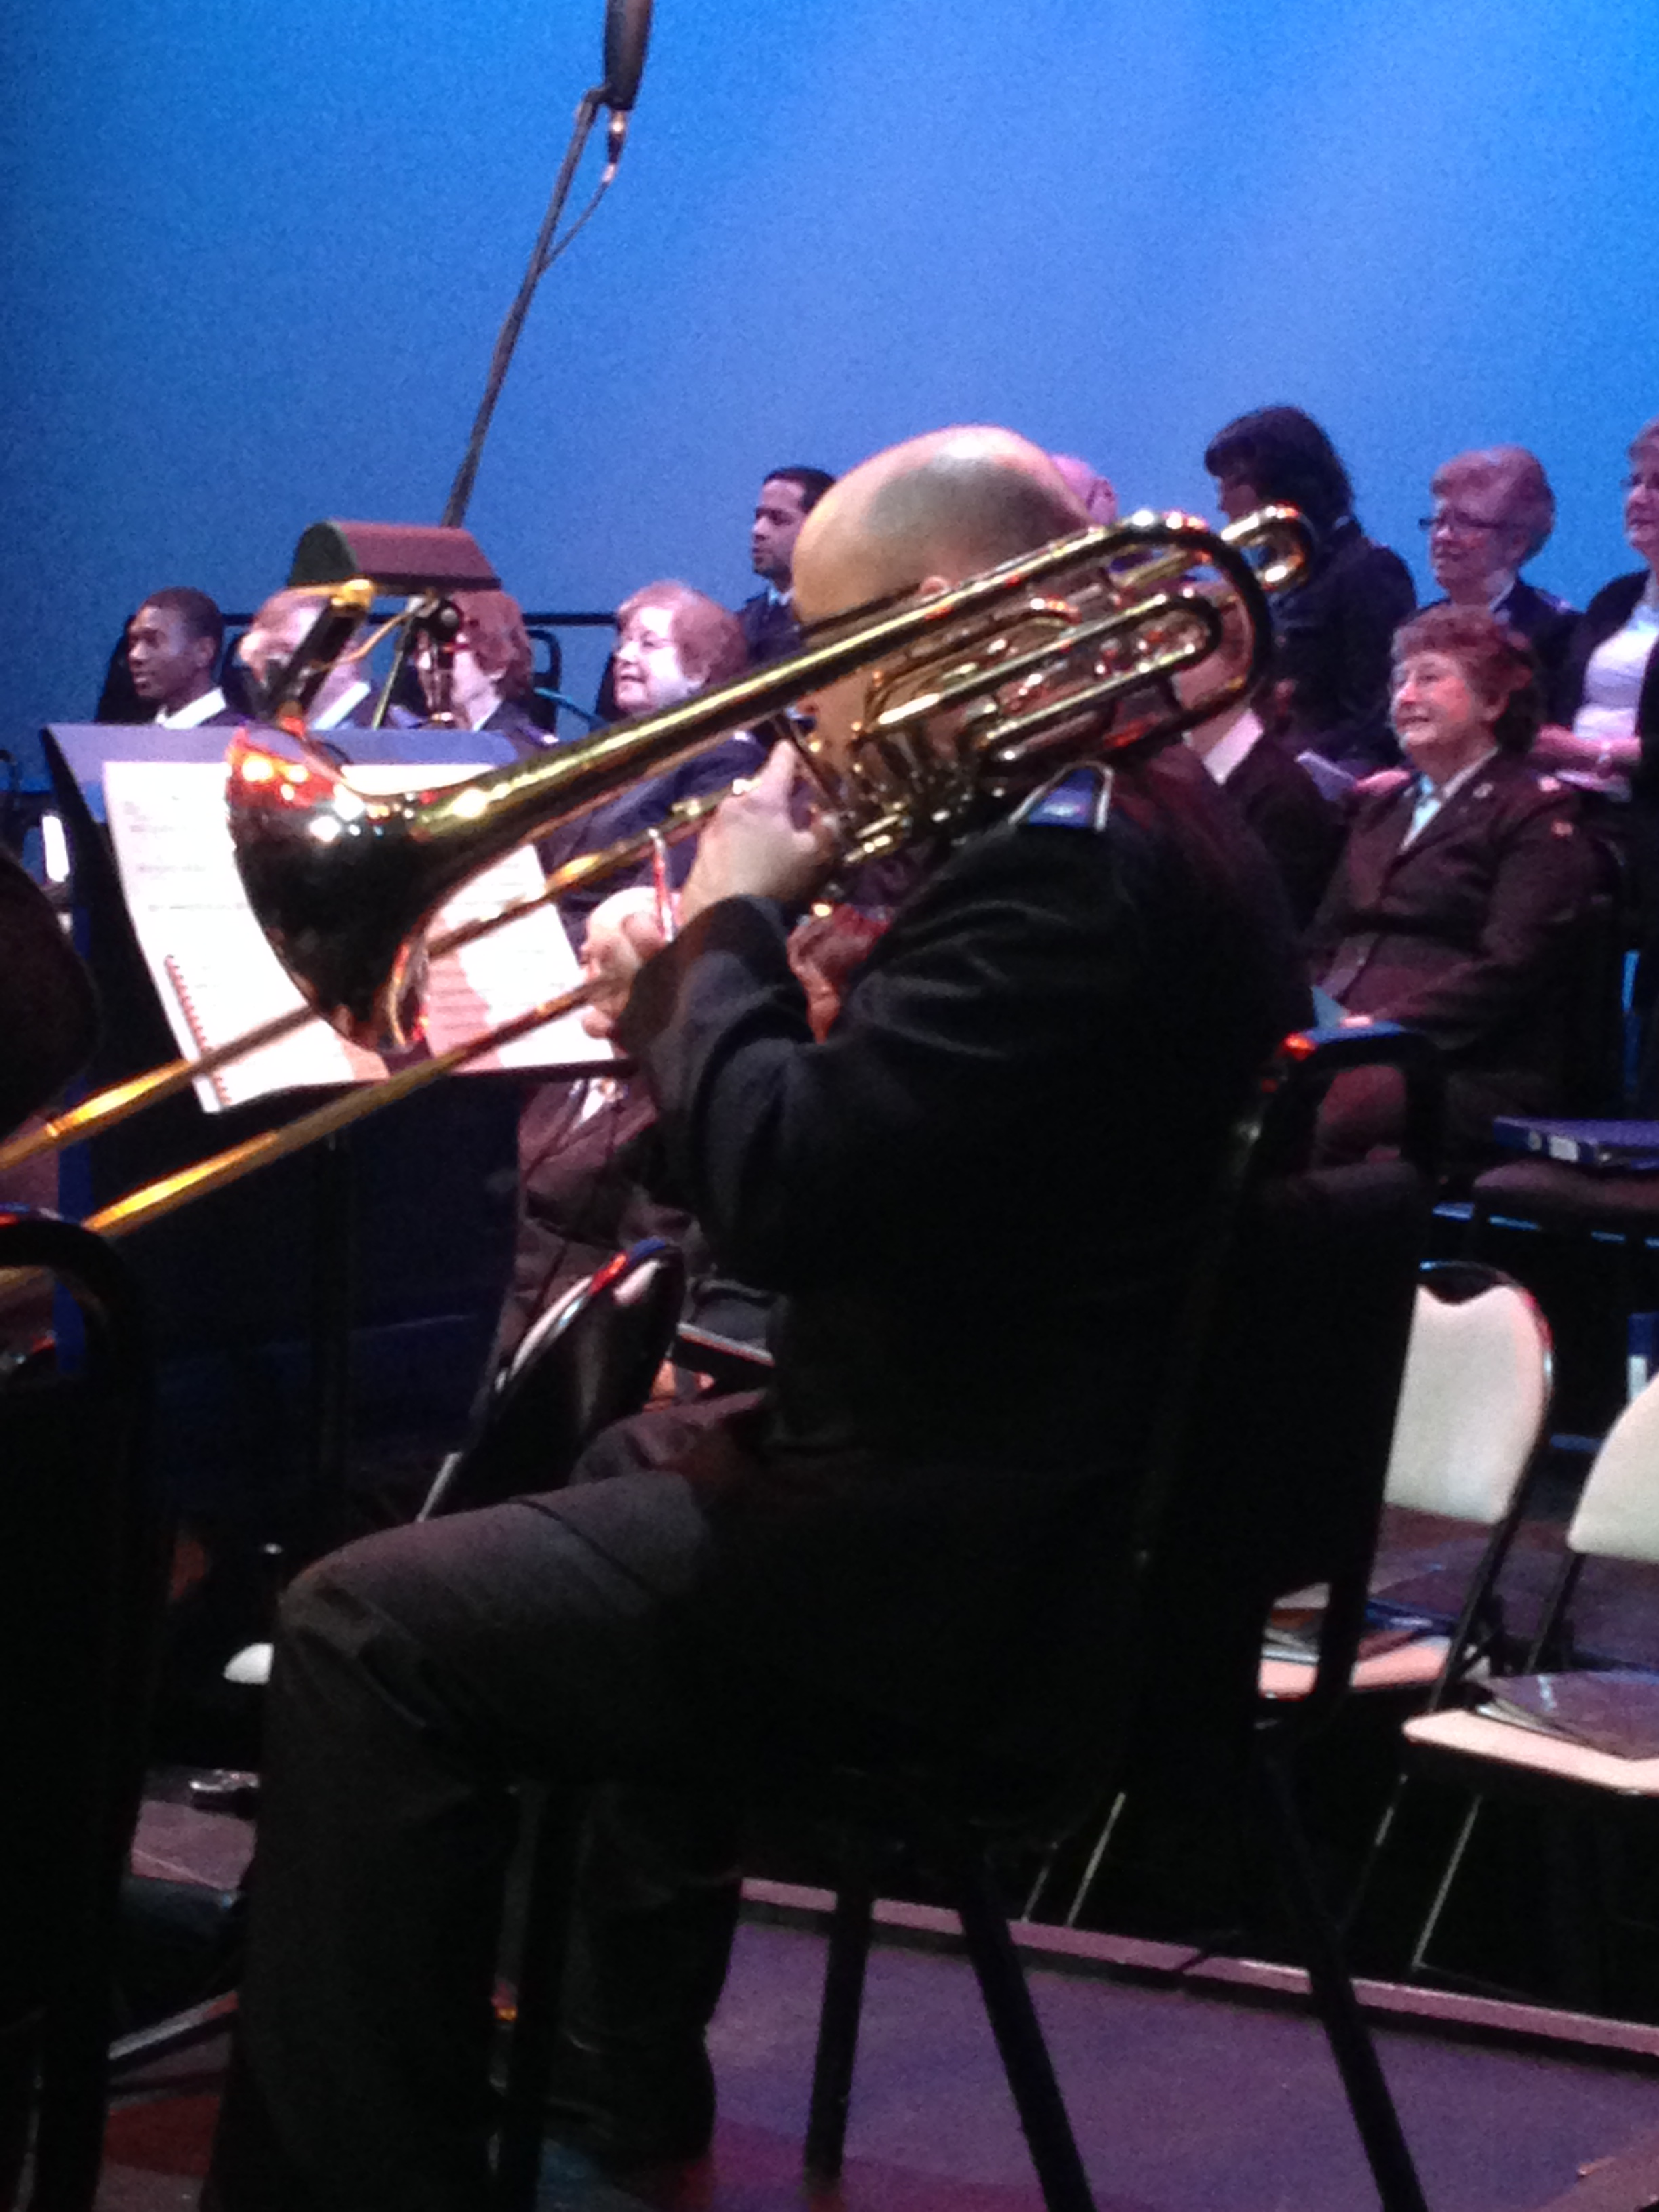 Image of man playing trombone in a symphony